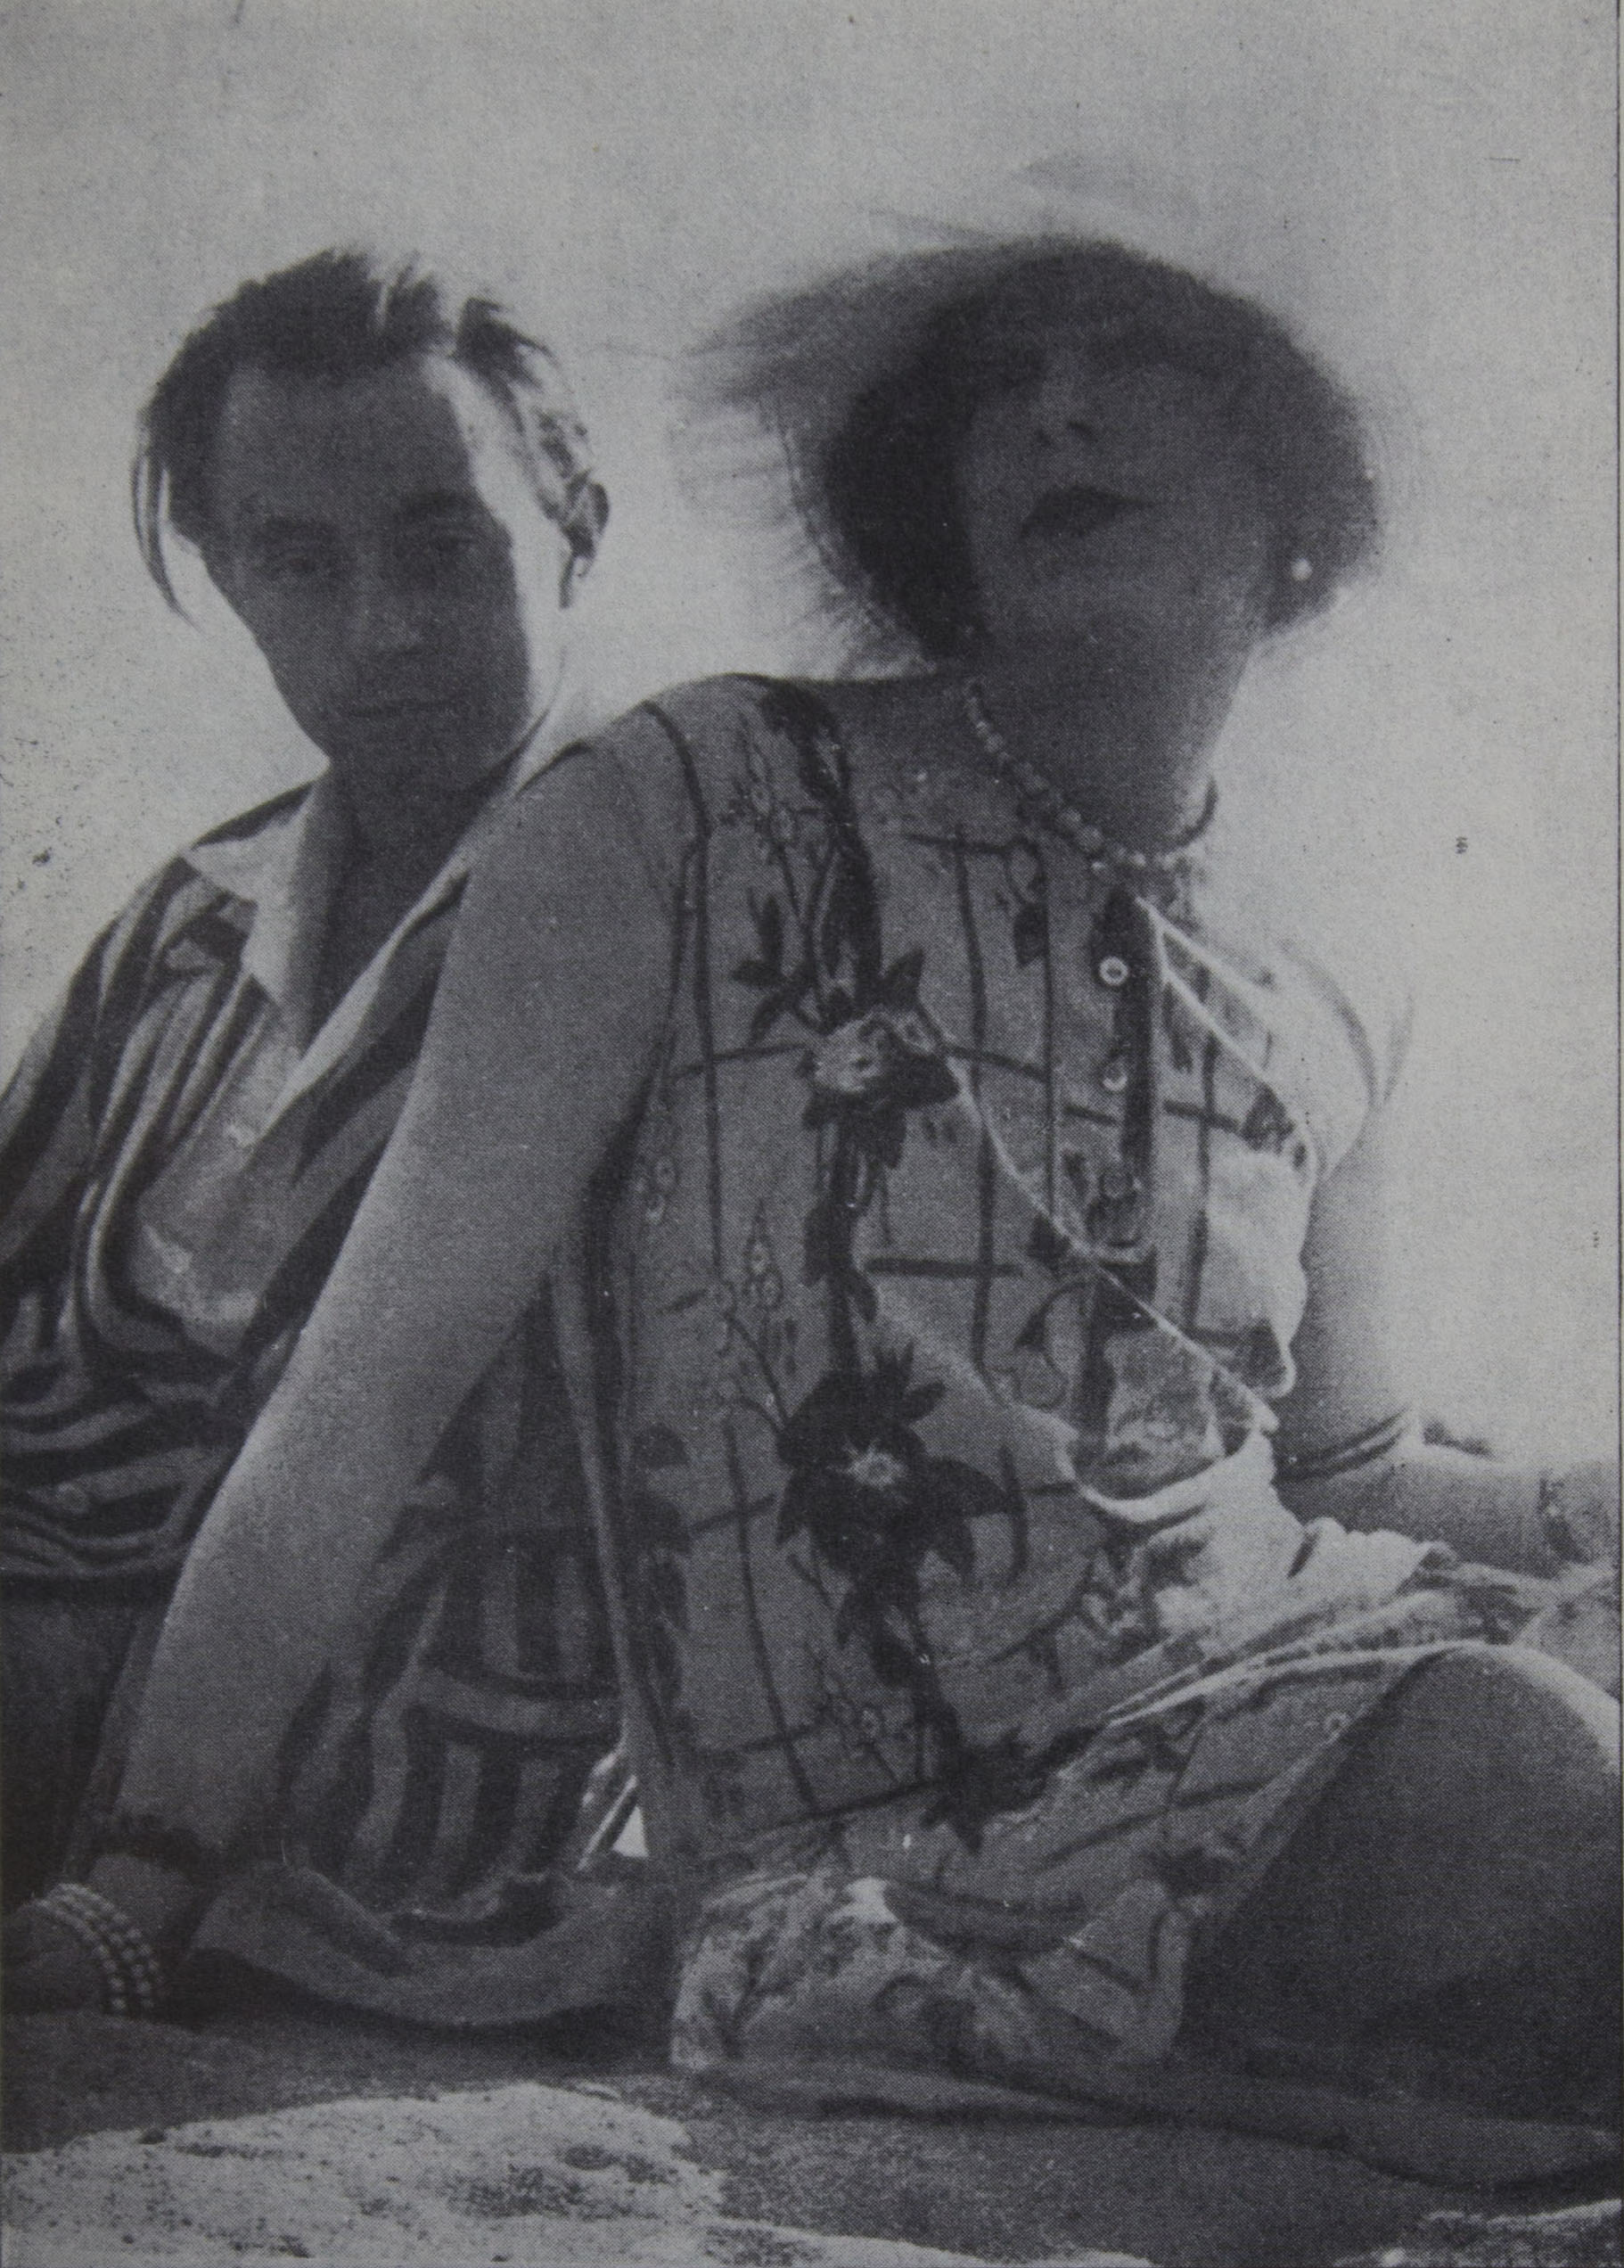 EINAR WEGENER (ANDREAS SPARRE) AT THE TIME HE BEGAN TO                             ASSUME THE NAME OF LILI, AND HER FRIEND                                 CLAUDE, BEAUGENCY, FRANCE, 1928 (BEFORE THE OPERATION)